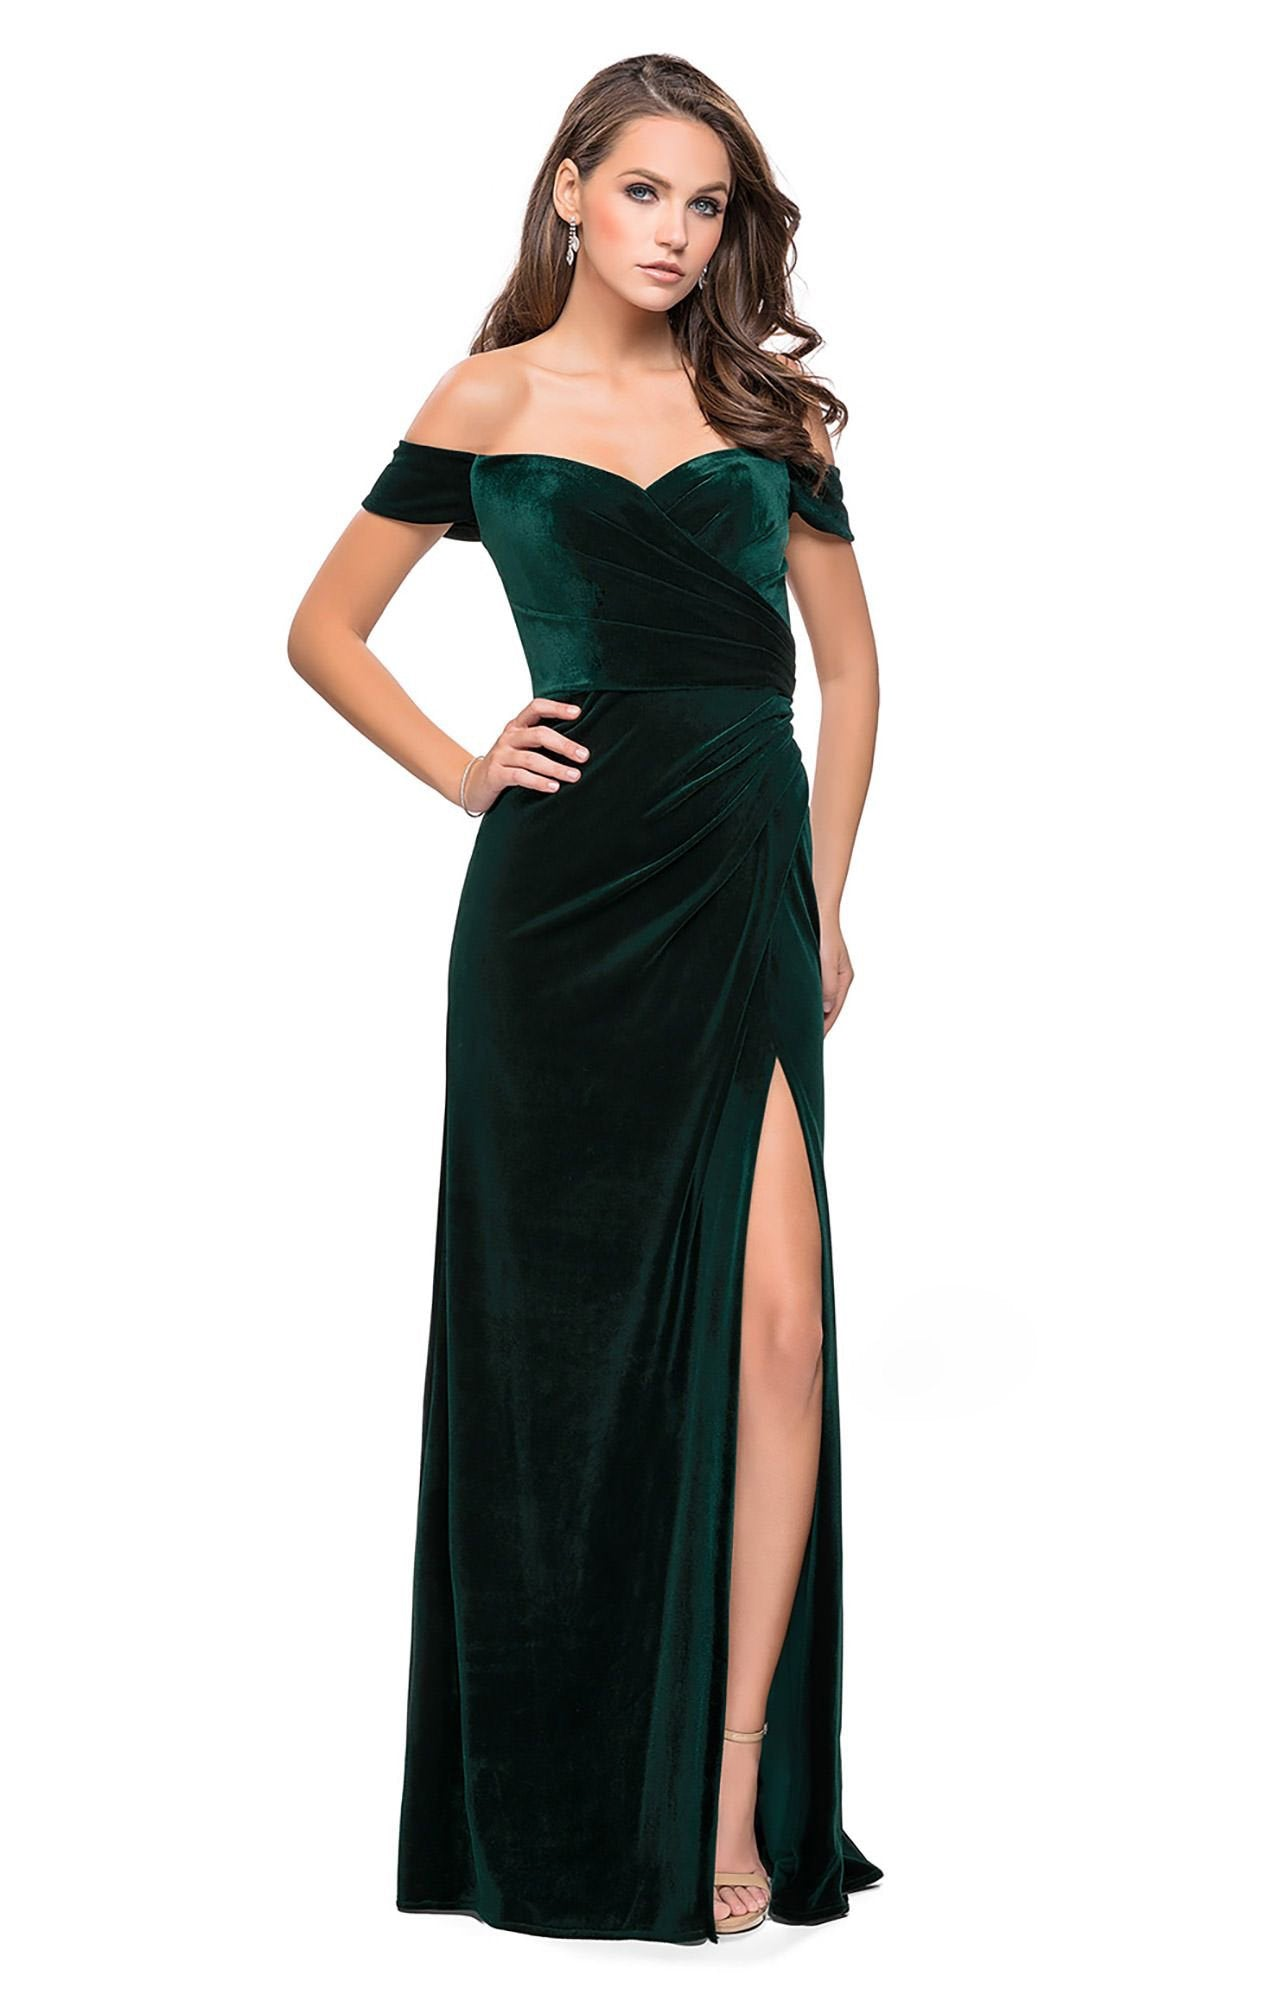 La Femme - Off-Shoulder Sheath Evening Gown with Slit 25213 In Green